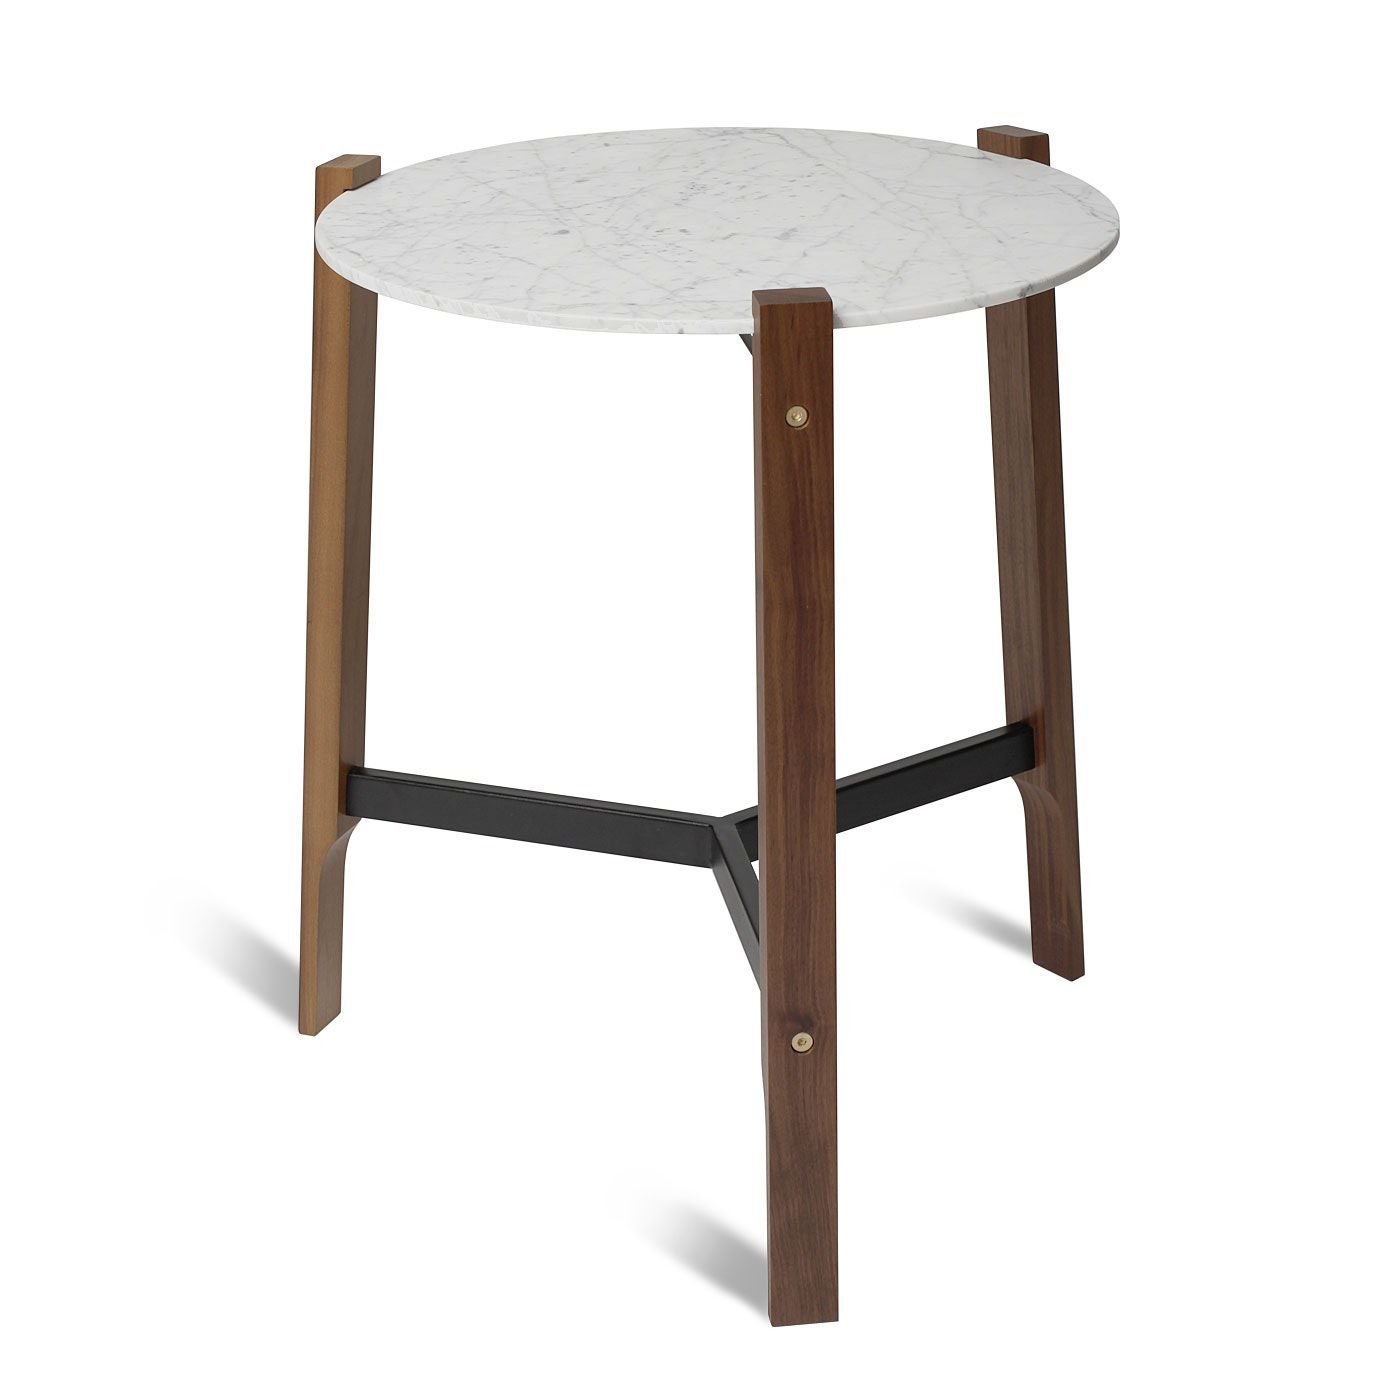 Contemporary hallway furniture  Buy Free Range Side Table by Blu Dot  Quick Ship designer Furniture